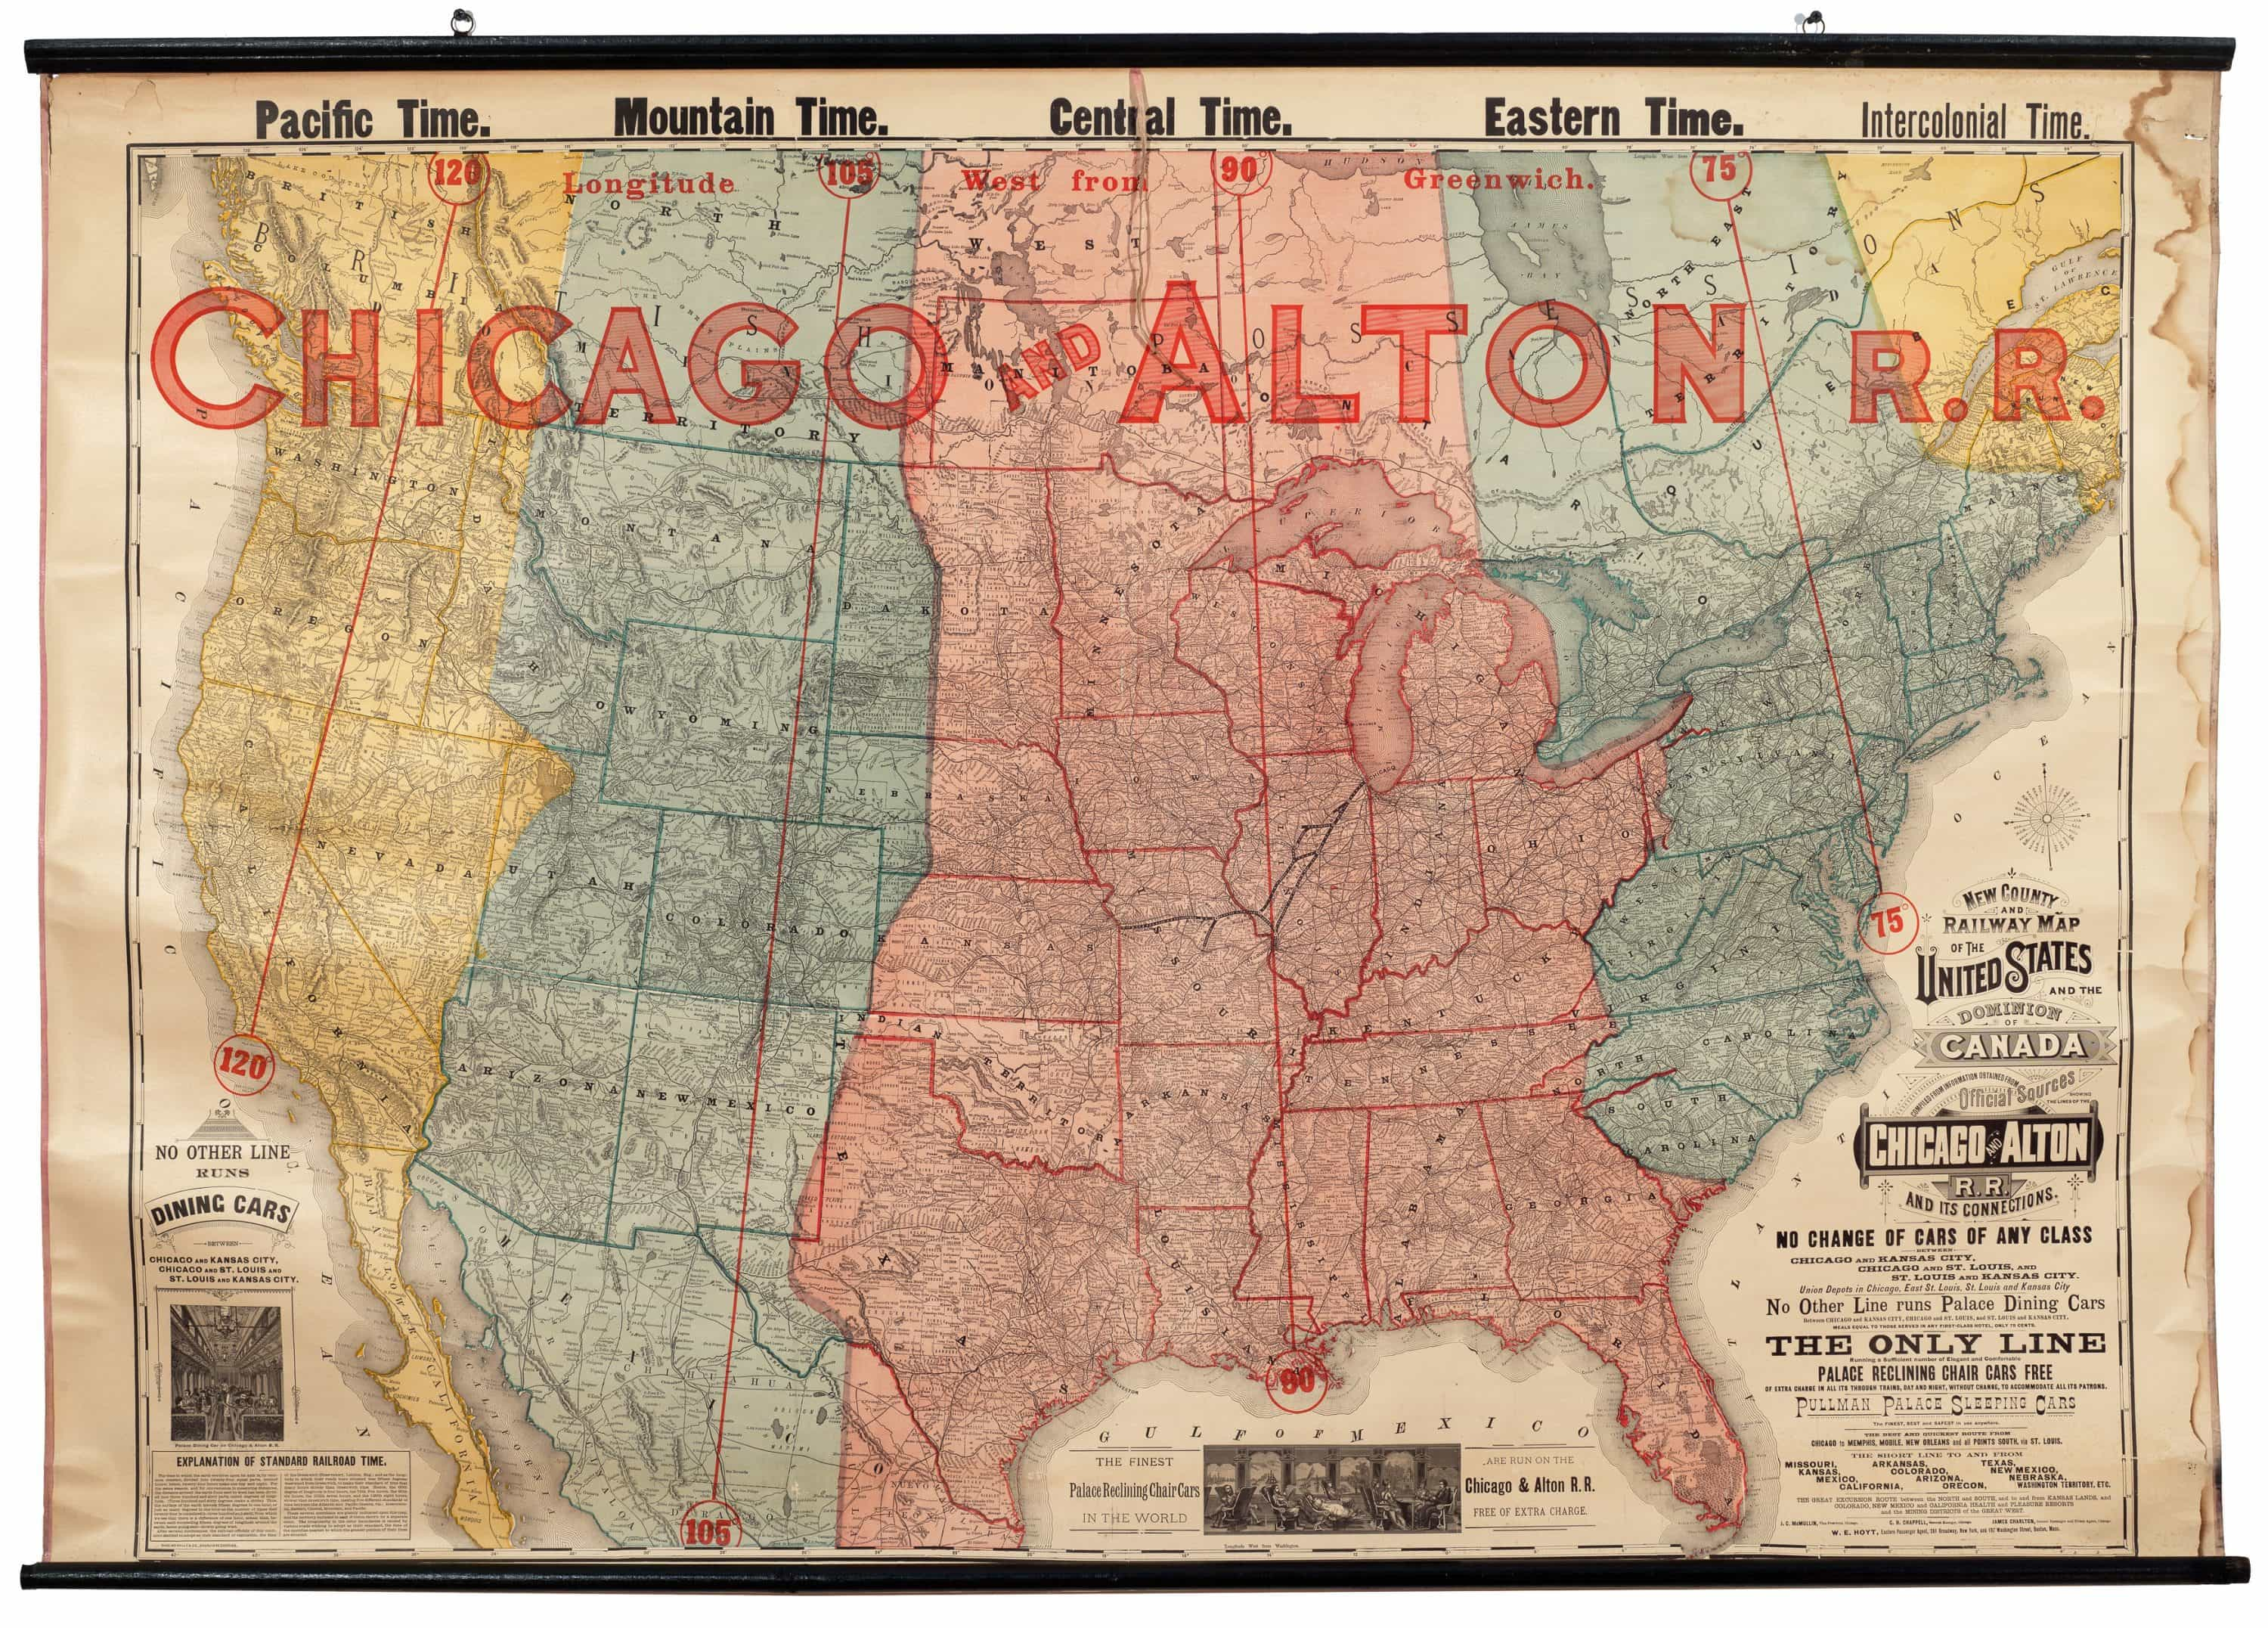 Have you ever wanted to know the time and date in chicago so you can phone home while vacationing in the uk? Striking Railroad Map Featuring New American Time Zones Rare Antique Maps